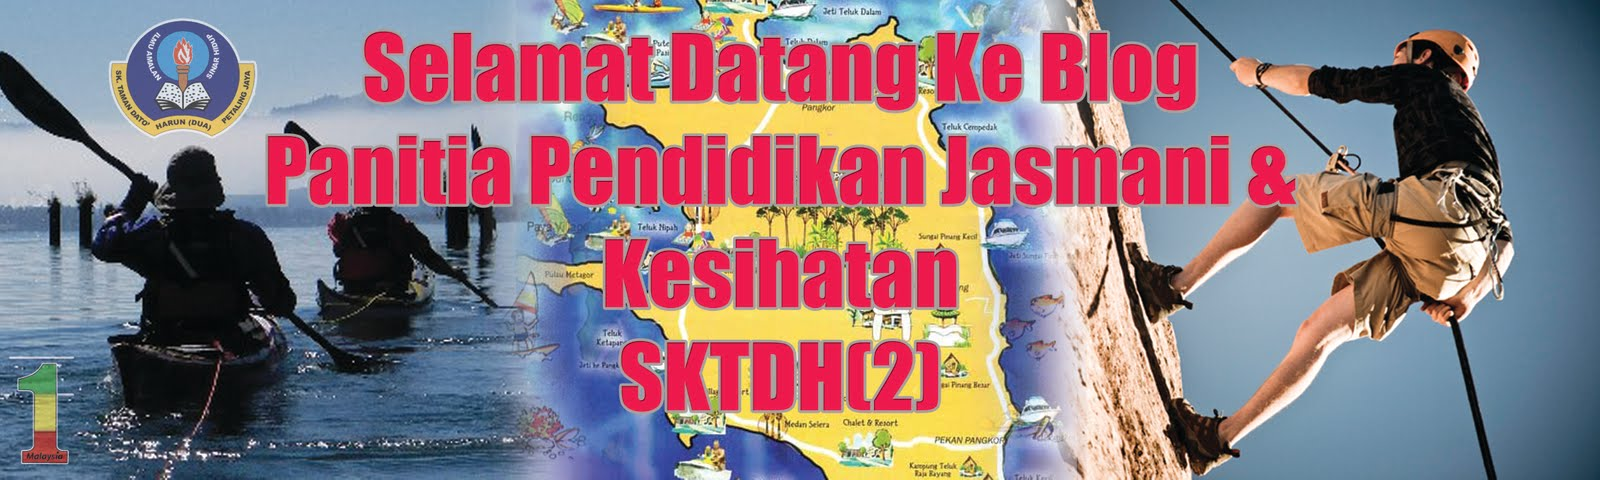 PANITIA PENDIDIKAN JASMANI &amp; KESIHATAN SKTDH2